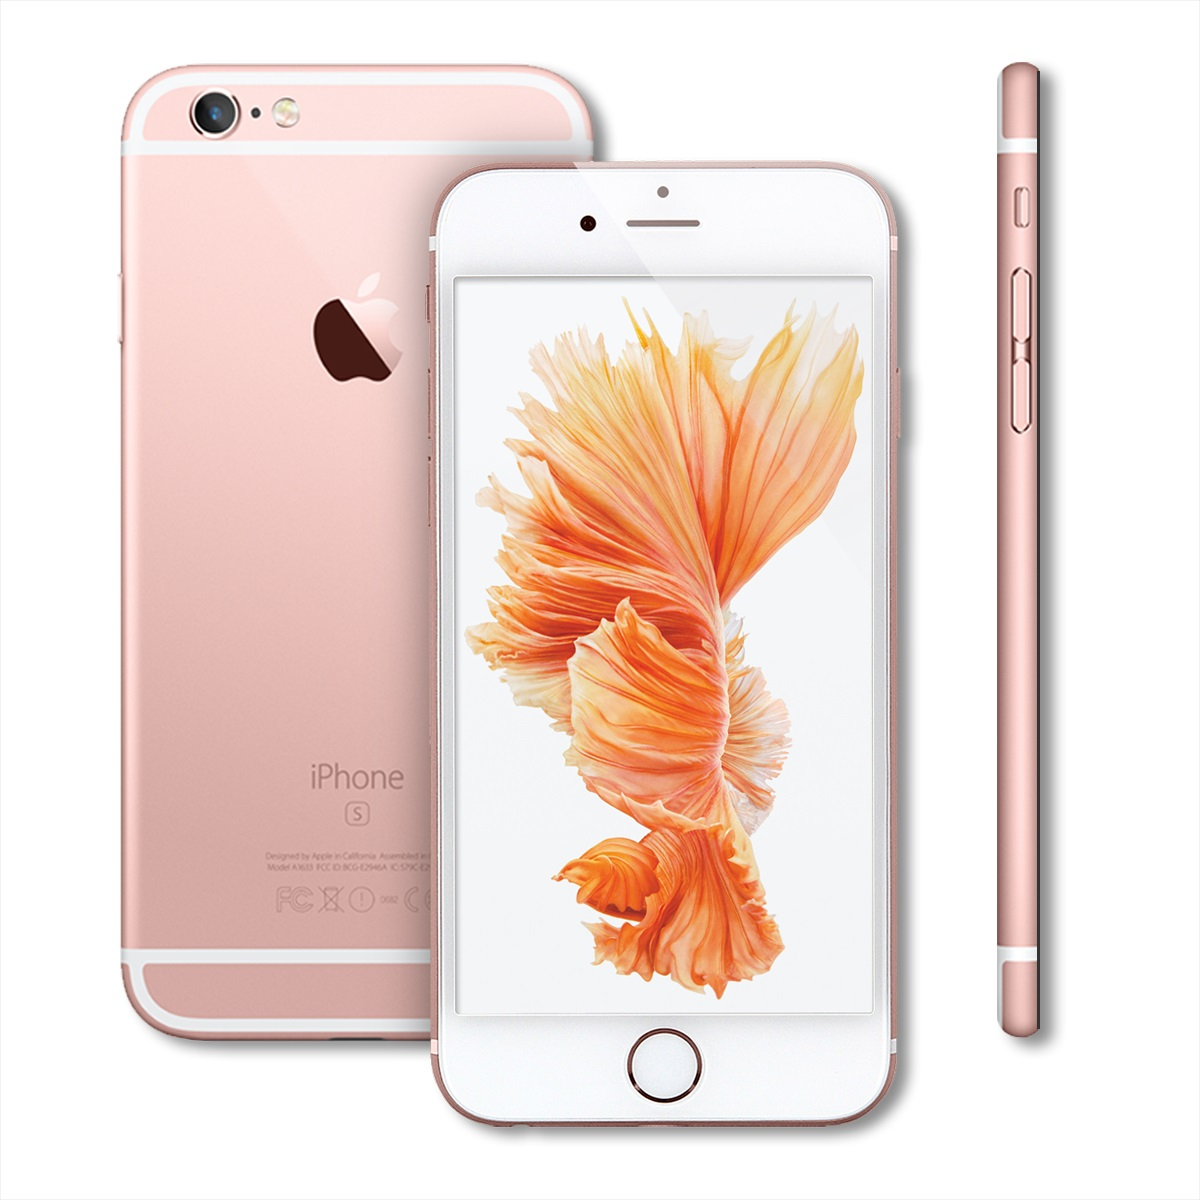 Apple Iphone 6s Smartphone 16gb Unlocked Cell Phone A1688